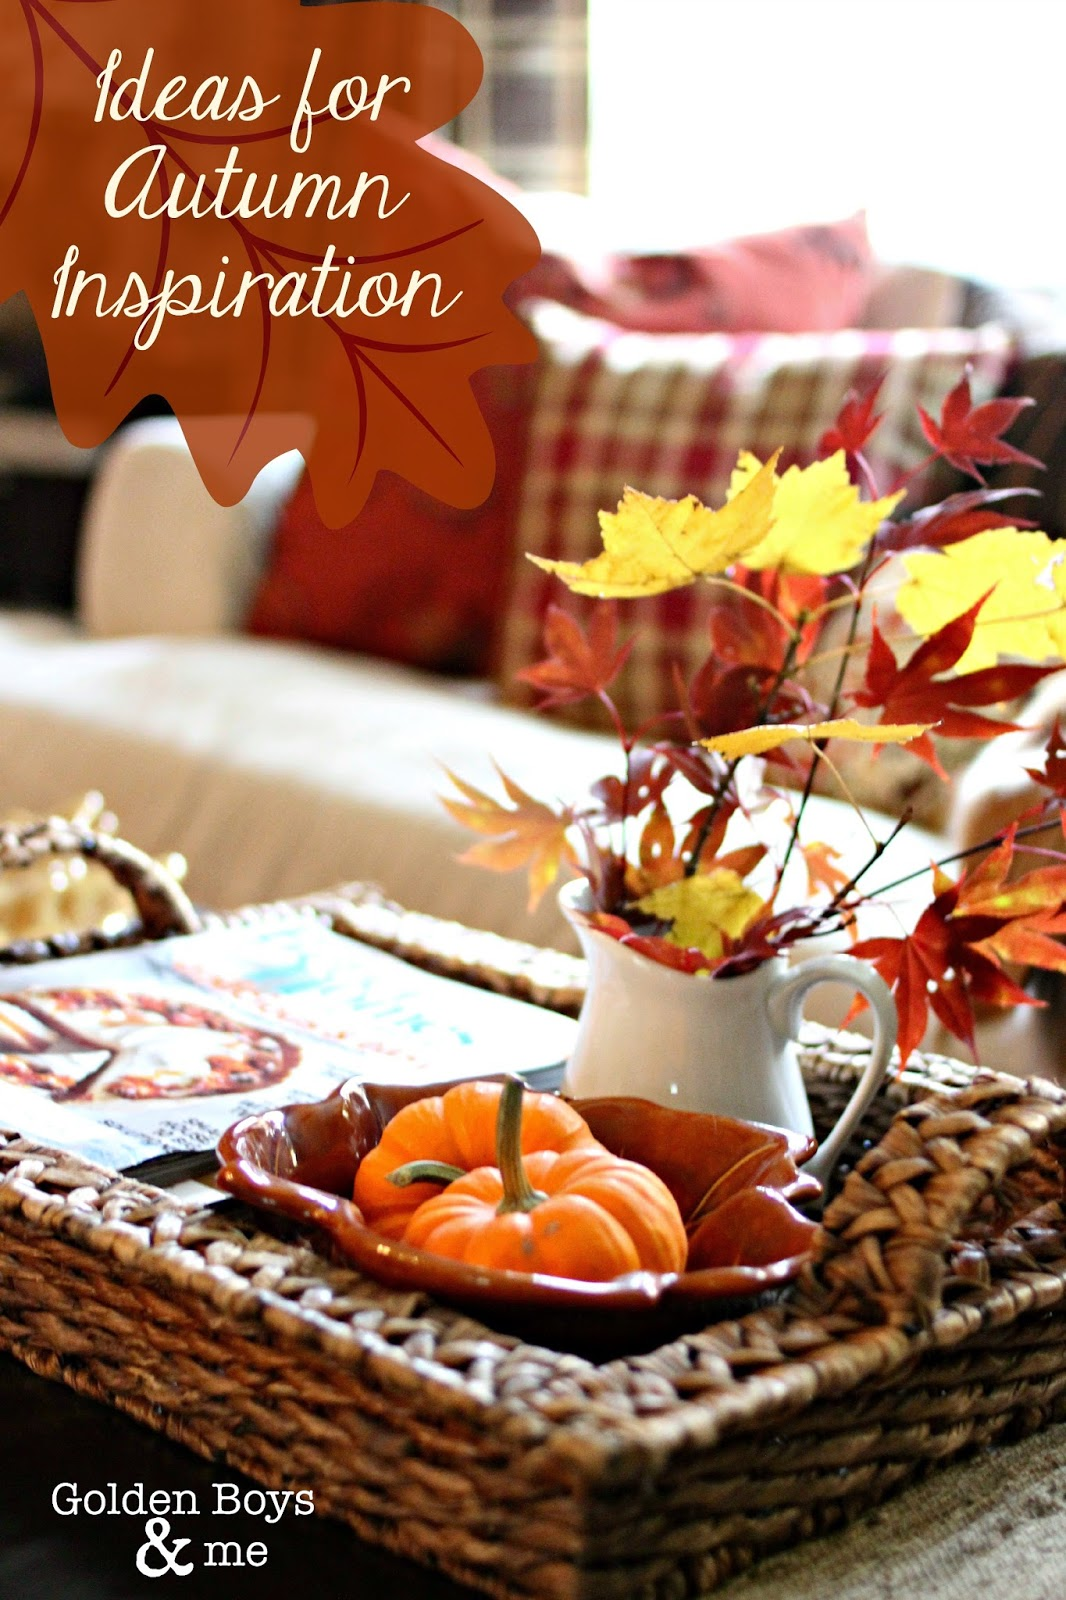 Ideas for autumn inspiration www.goldenboysandme.com